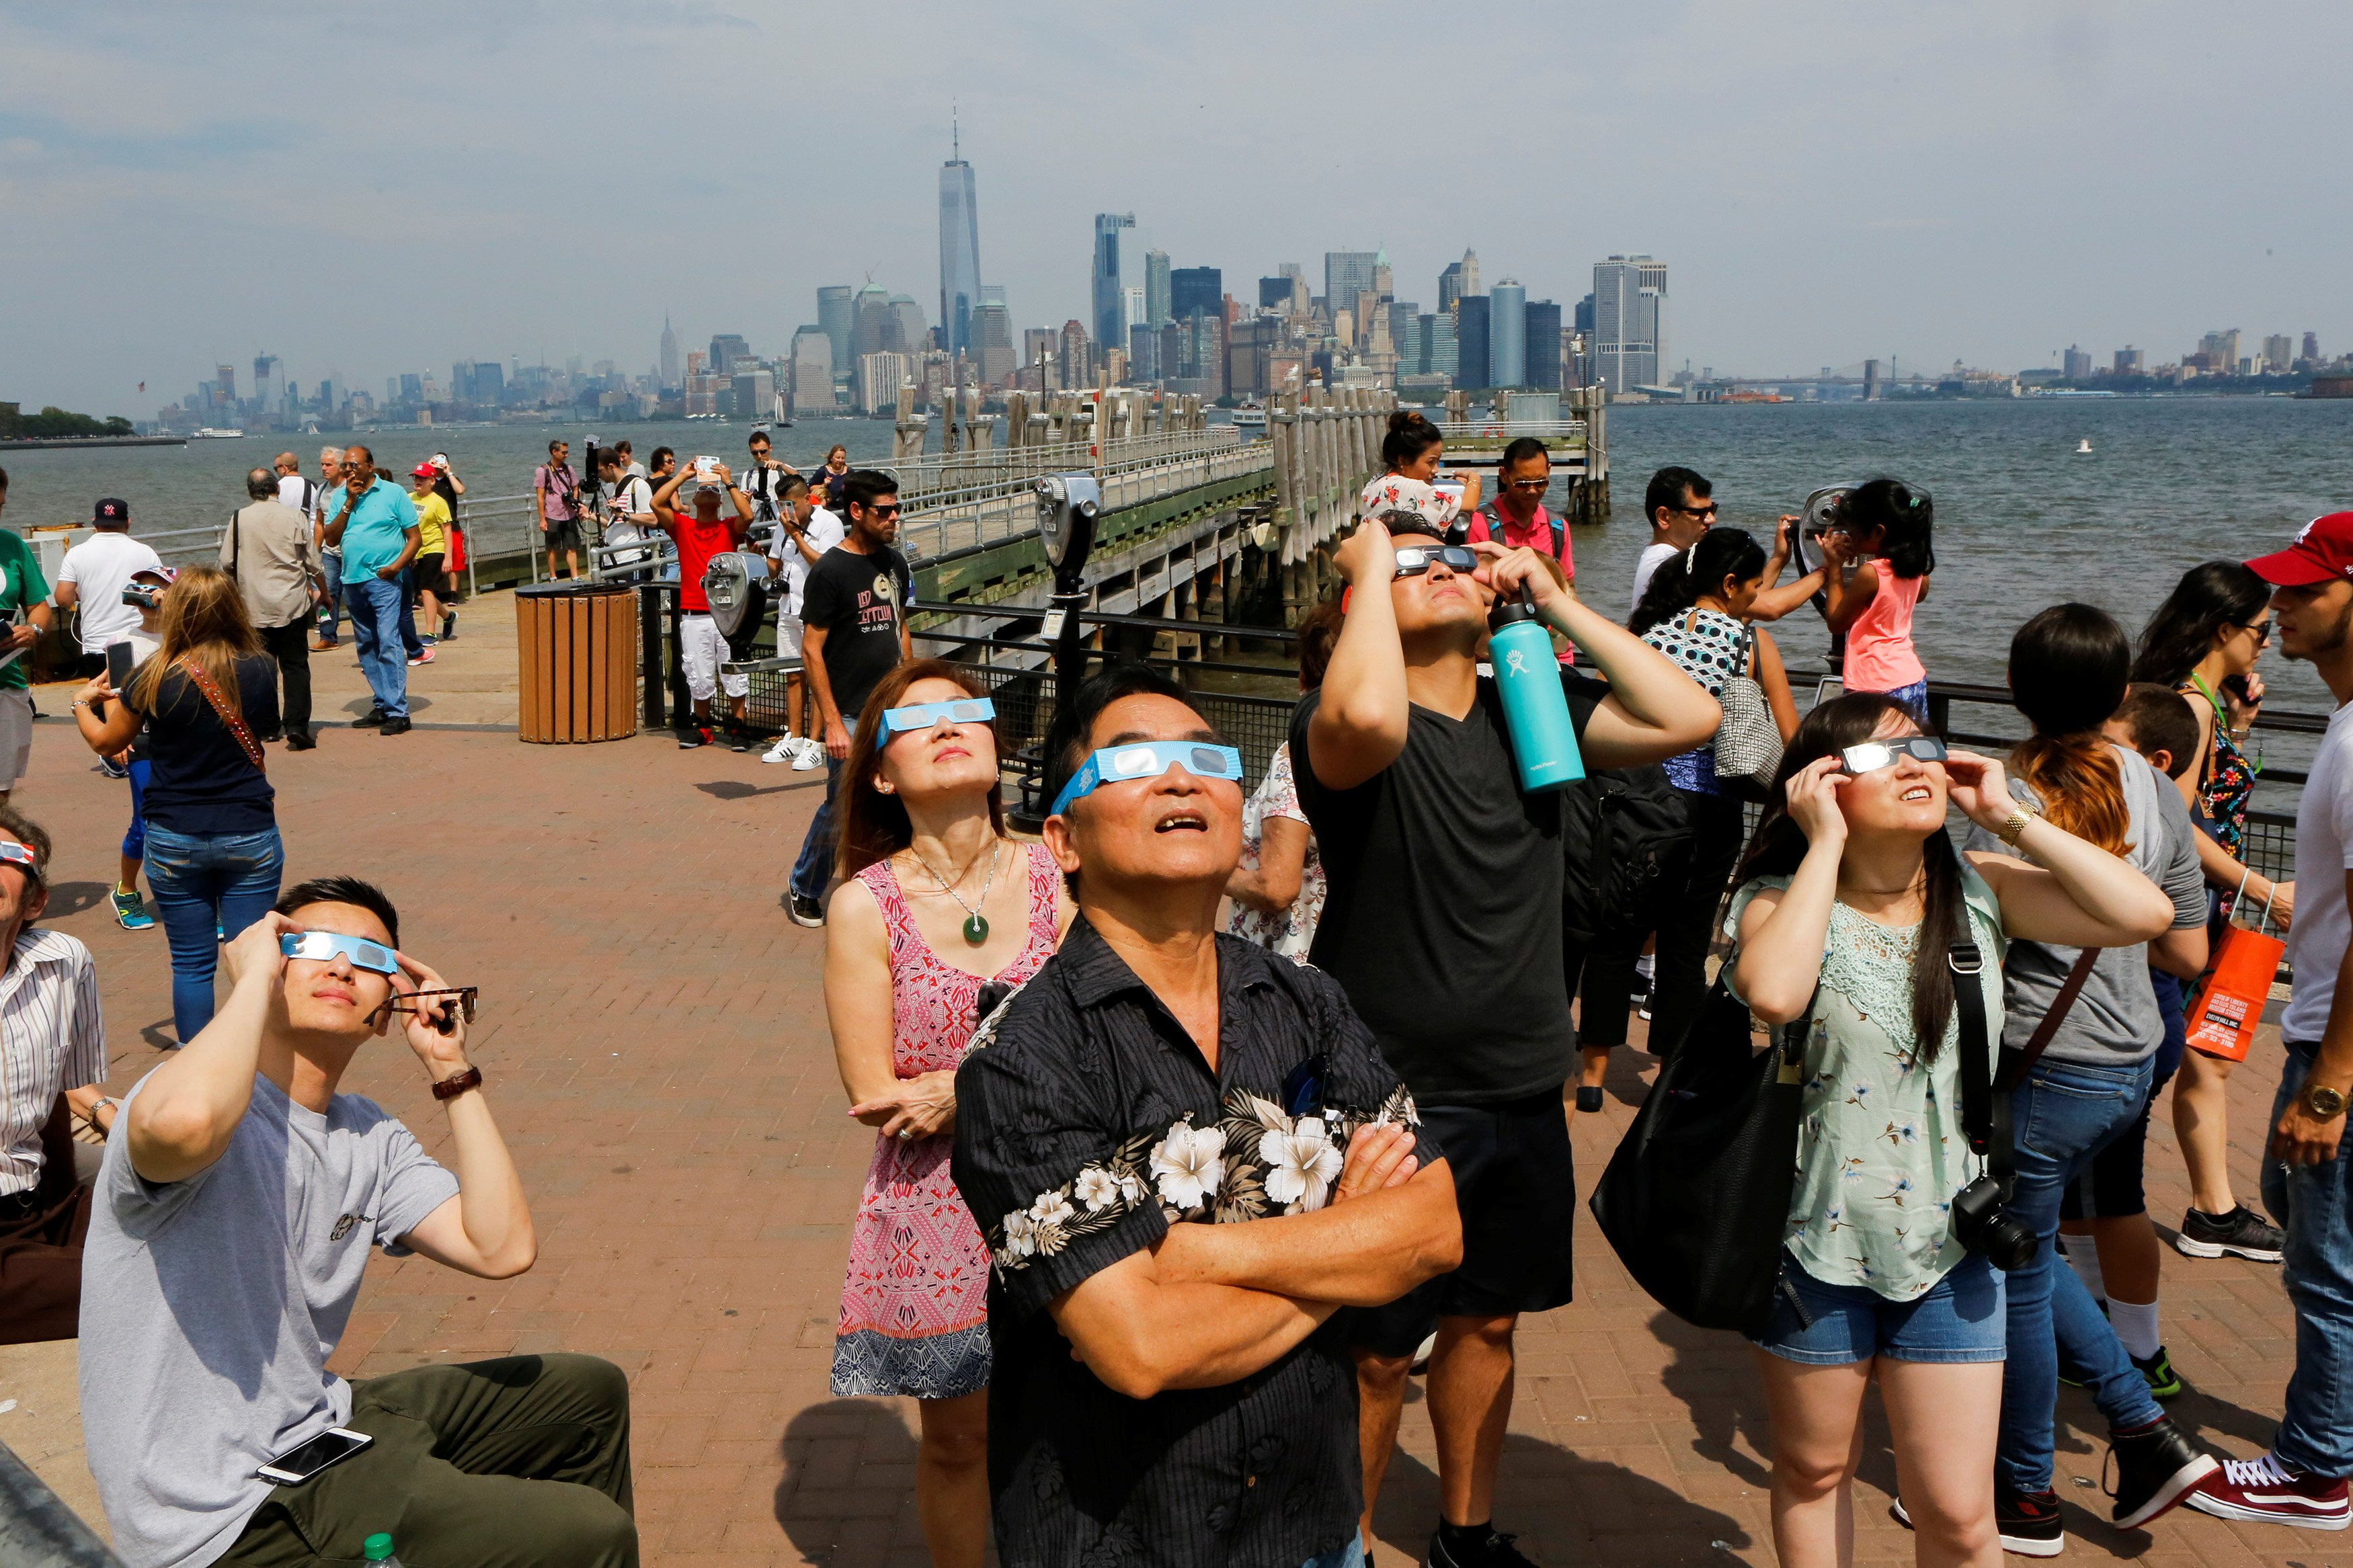 People view the solar eclipse at Liberty State Island as the Lower Manhattan and One World Trade center are seen in the background in New York, U.S., August 21, 2017. Location coordinates for this image are 40.4124' N, 74.237'. W